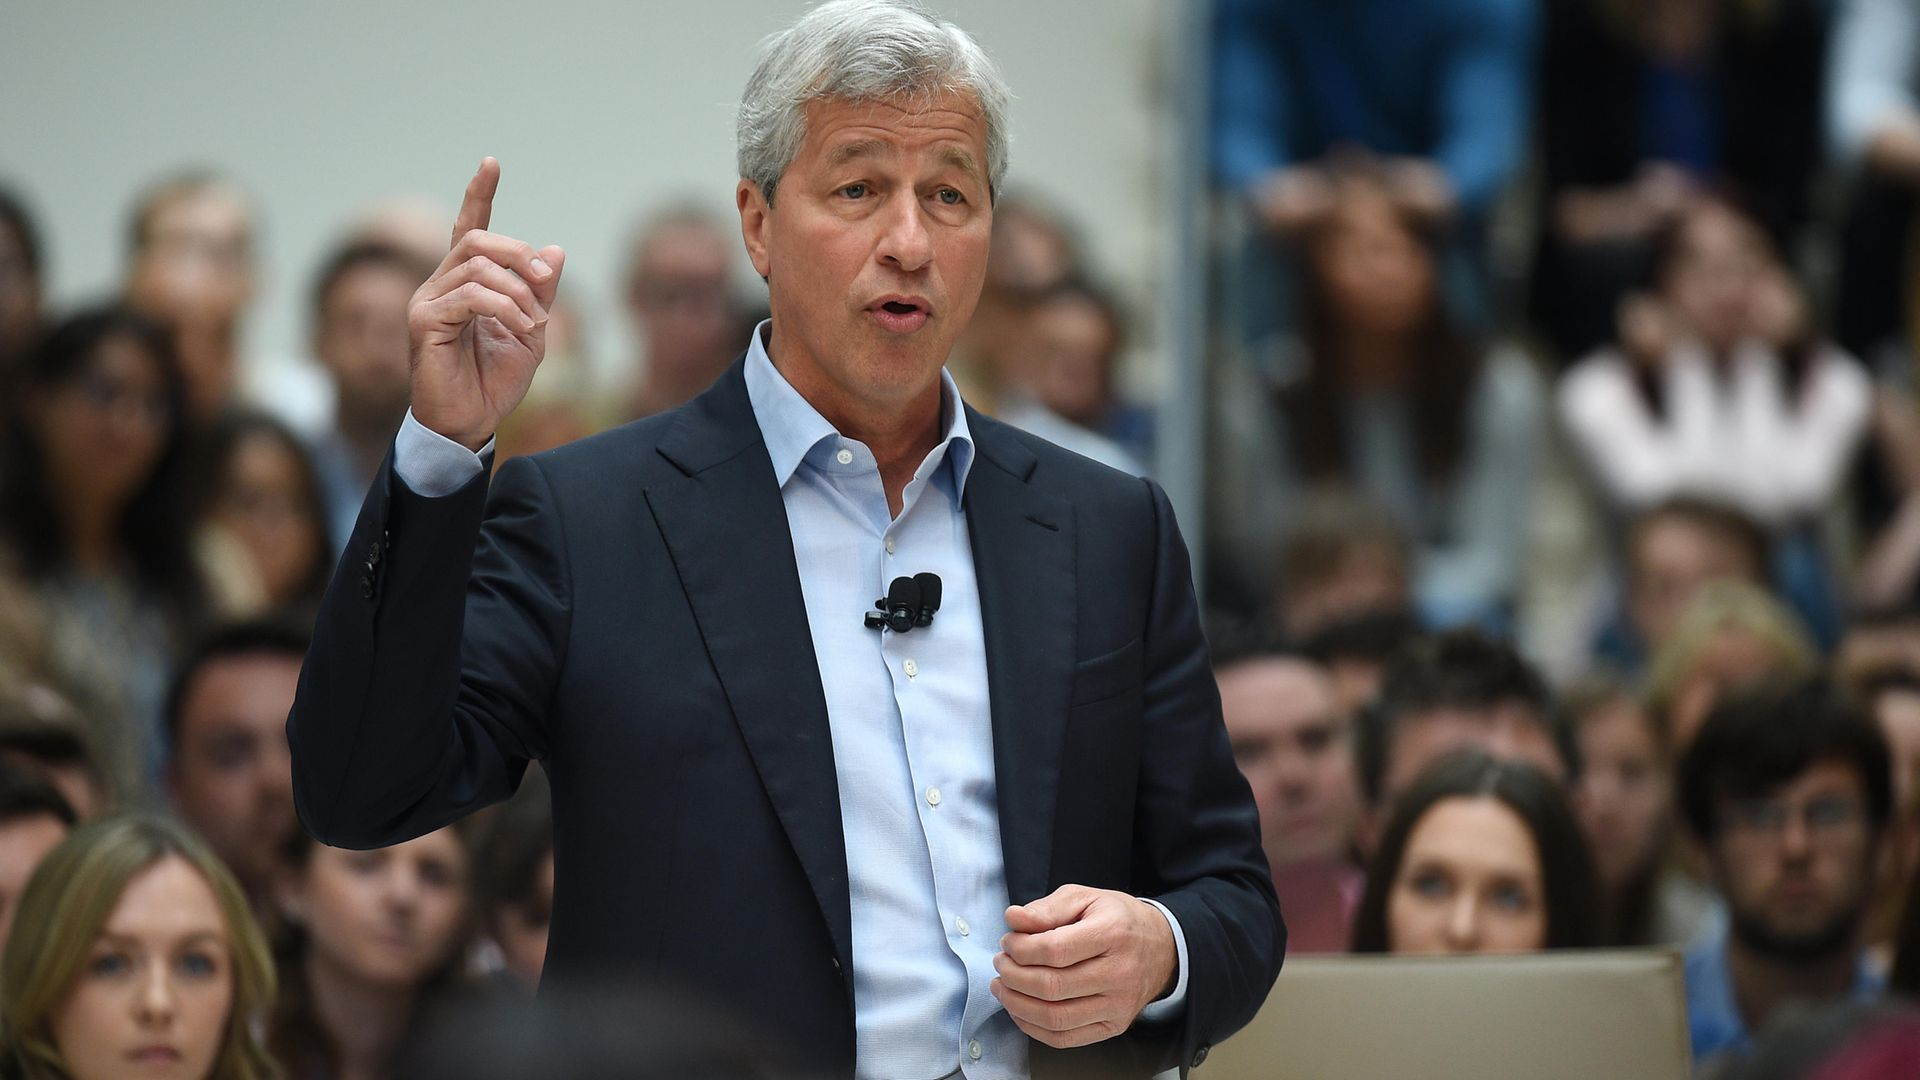 James Dimon, president and chief executive officer of JPMorgan Chase, speaking at JP Morgan's Bournemouth corporate centre in Dorset. - Credit: PA